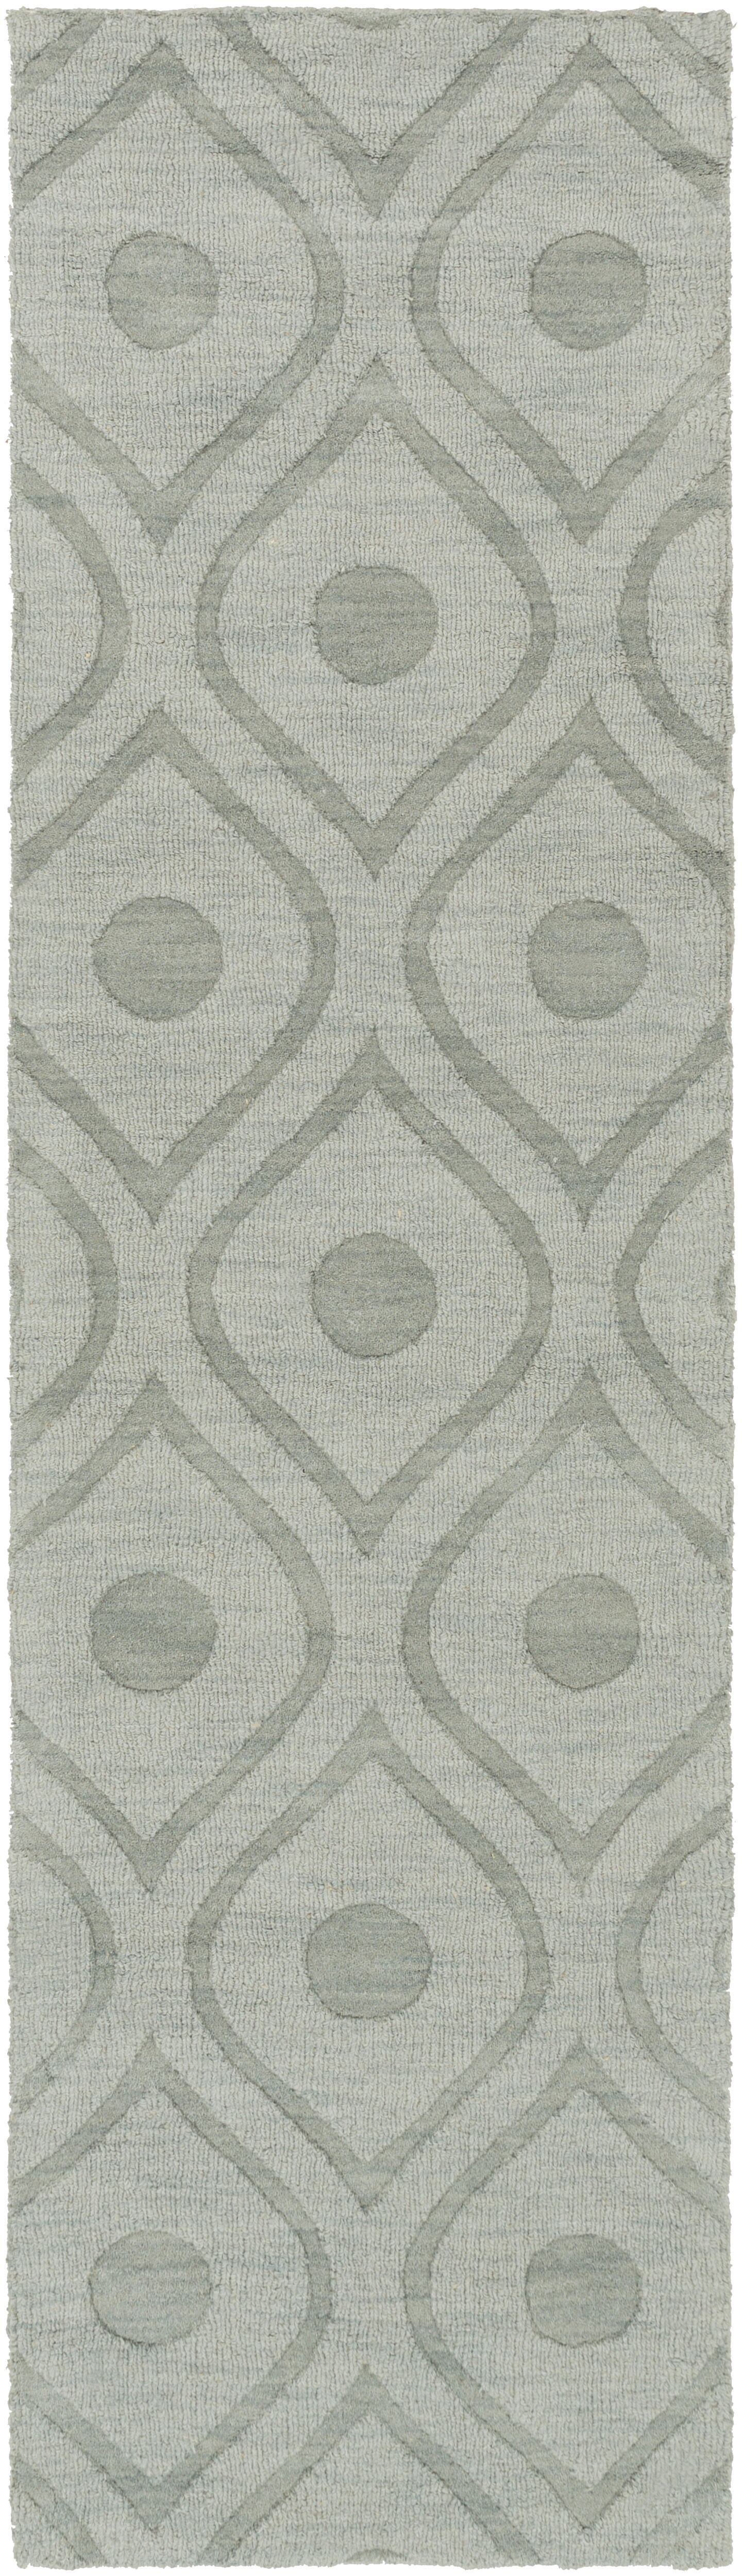 Castro Hand Woven Wool Blue-Gray Area Rug Rug Size: Runner 2'3